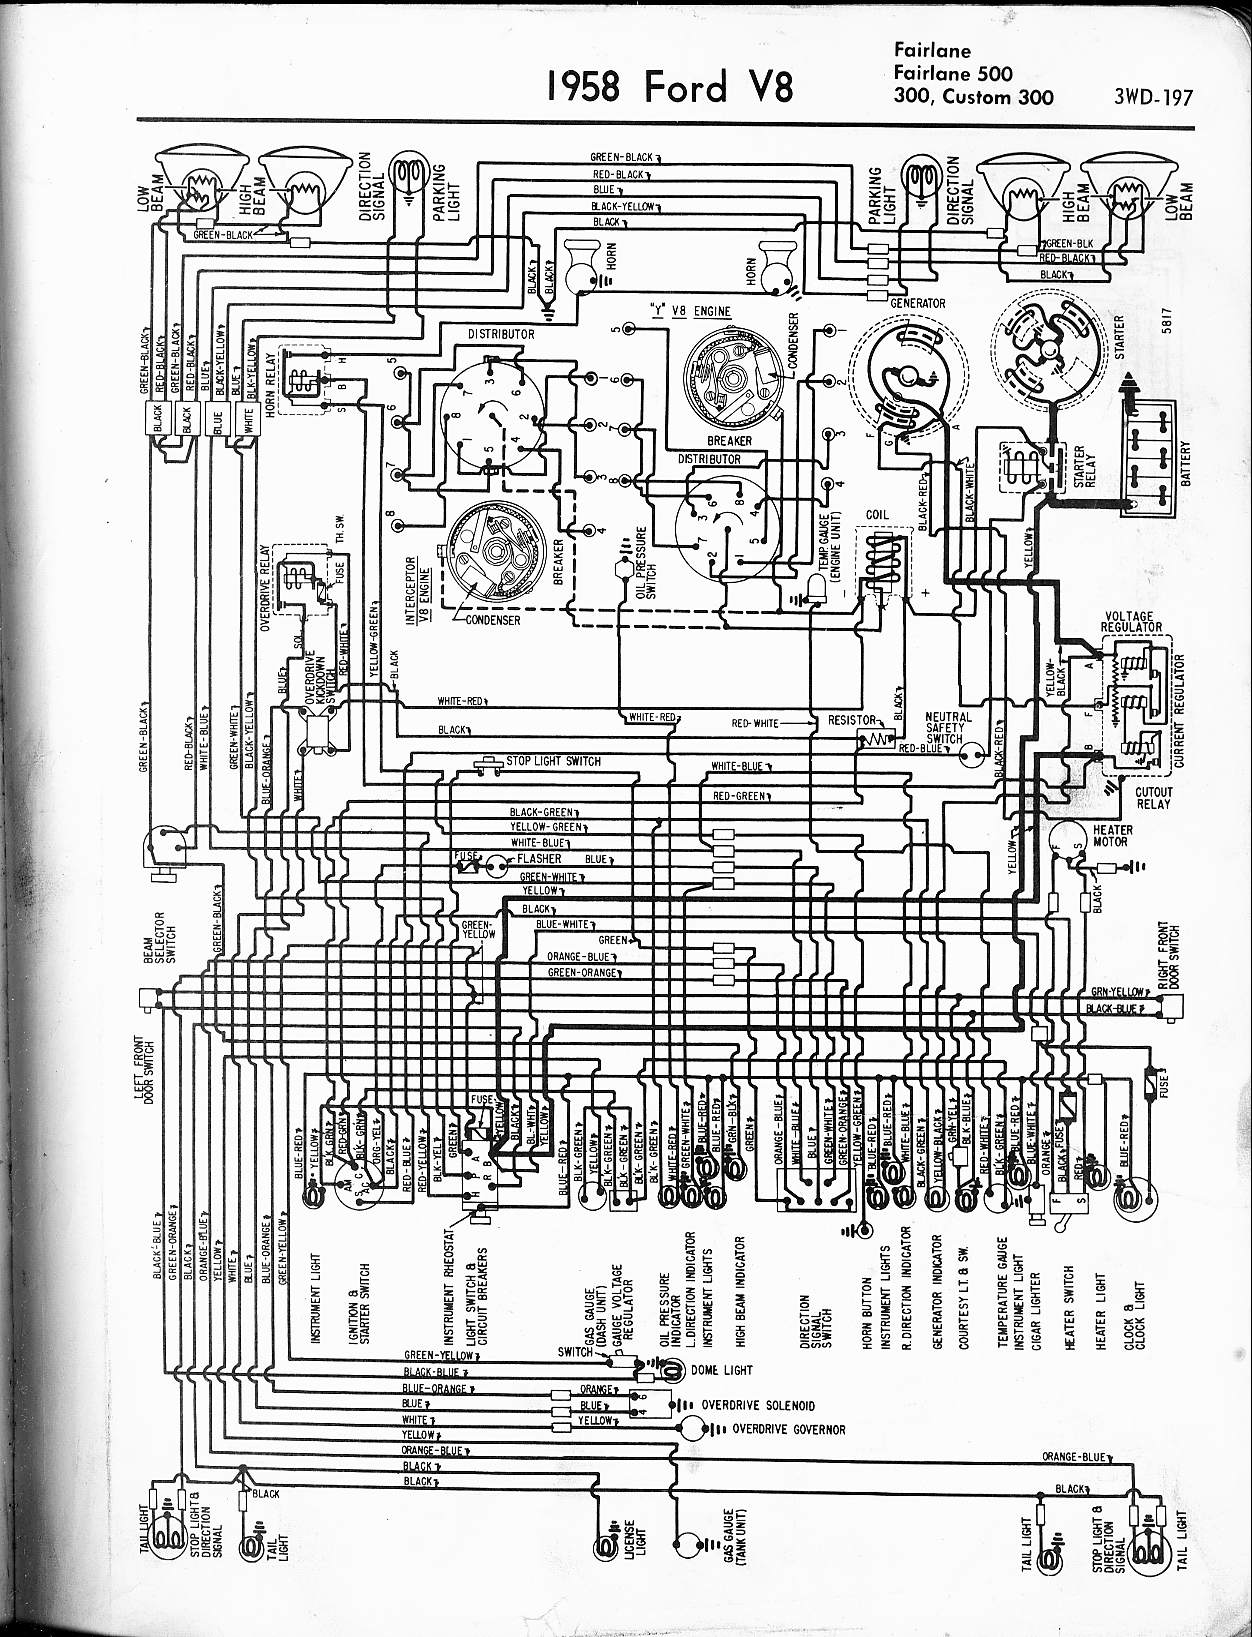 68 Ford Truck Wiring Diagram Data 1968 Impala 57 65 Diagrams Mustang 1958 V8 Fairlane 500 300